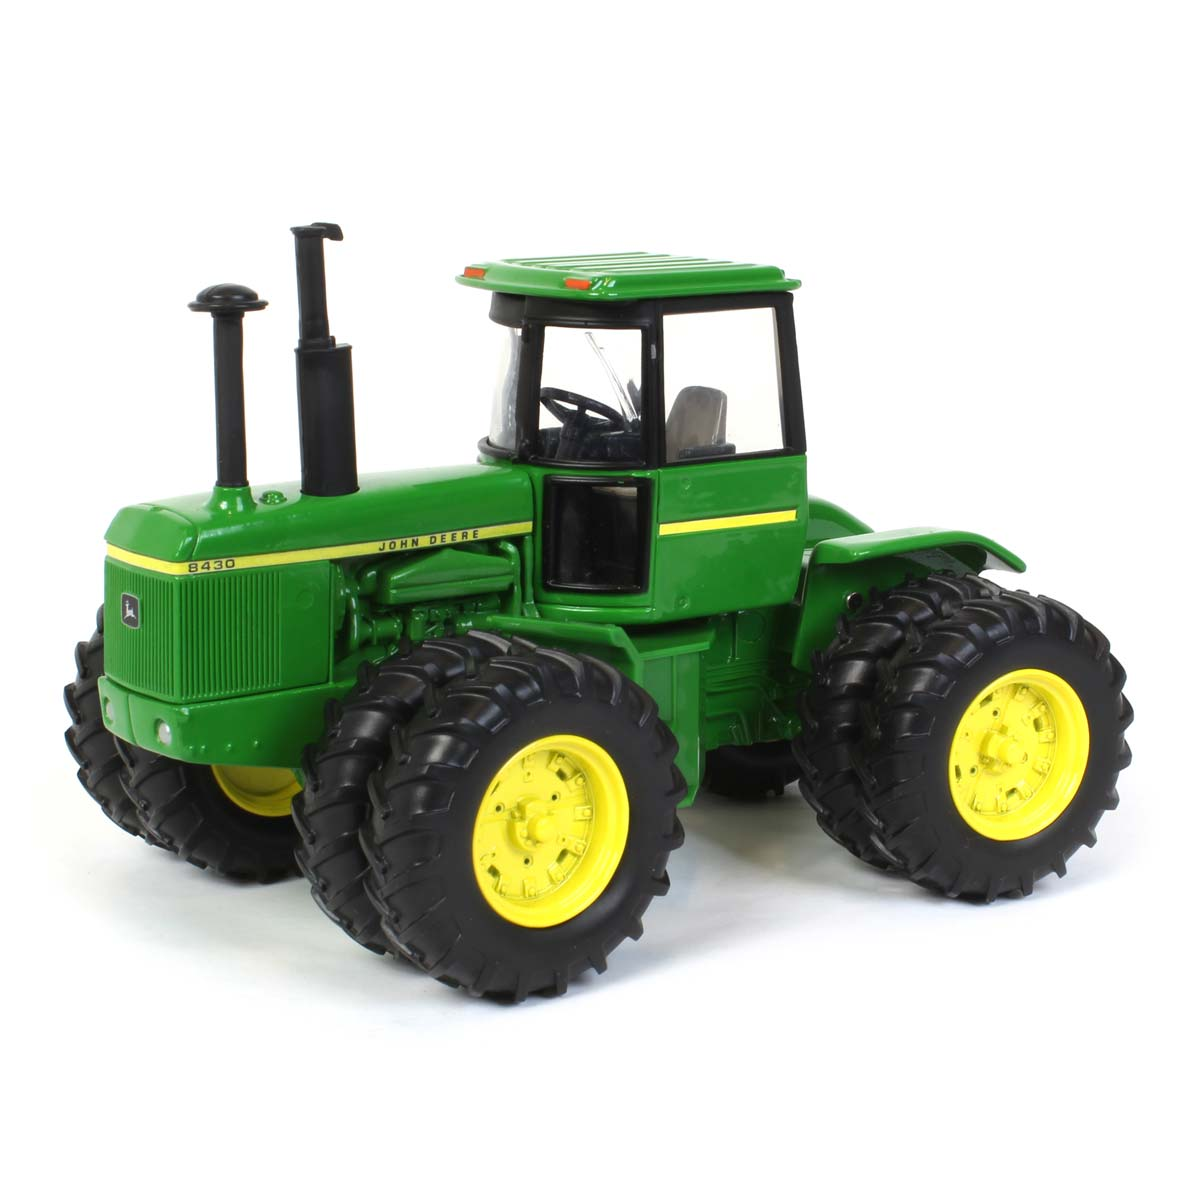 2nd in Series Outback Toys CM-2020 2020 Limited Edition IH 1566 Ornament